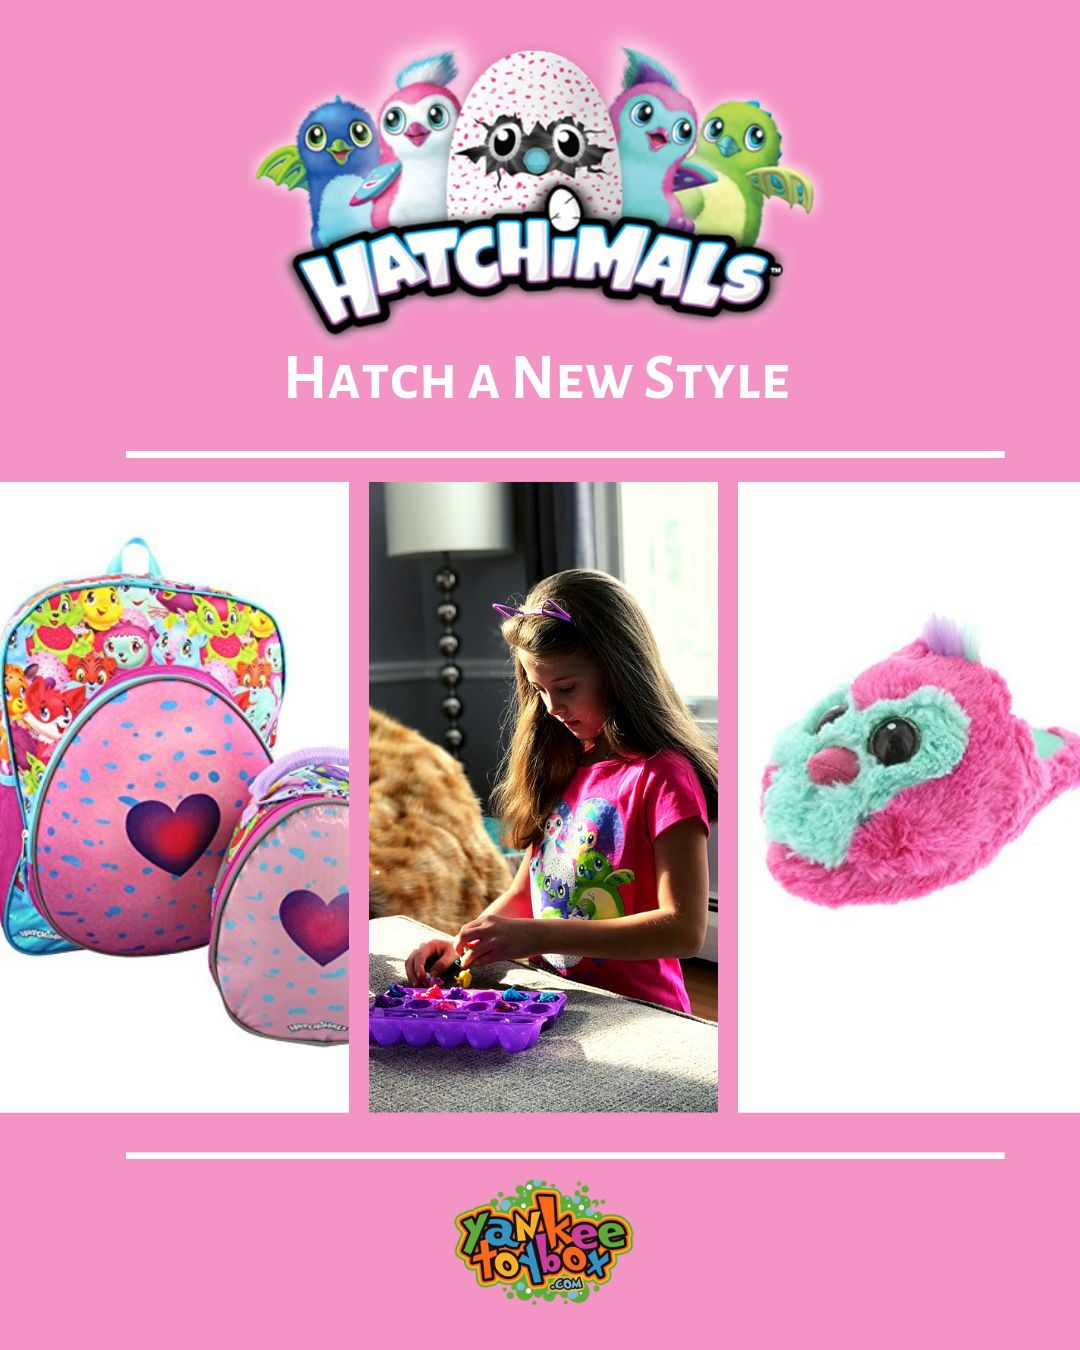 73ebbcb89ad9 Hatch your own style. Find all your Hatchimals merchandise at Yankee ...